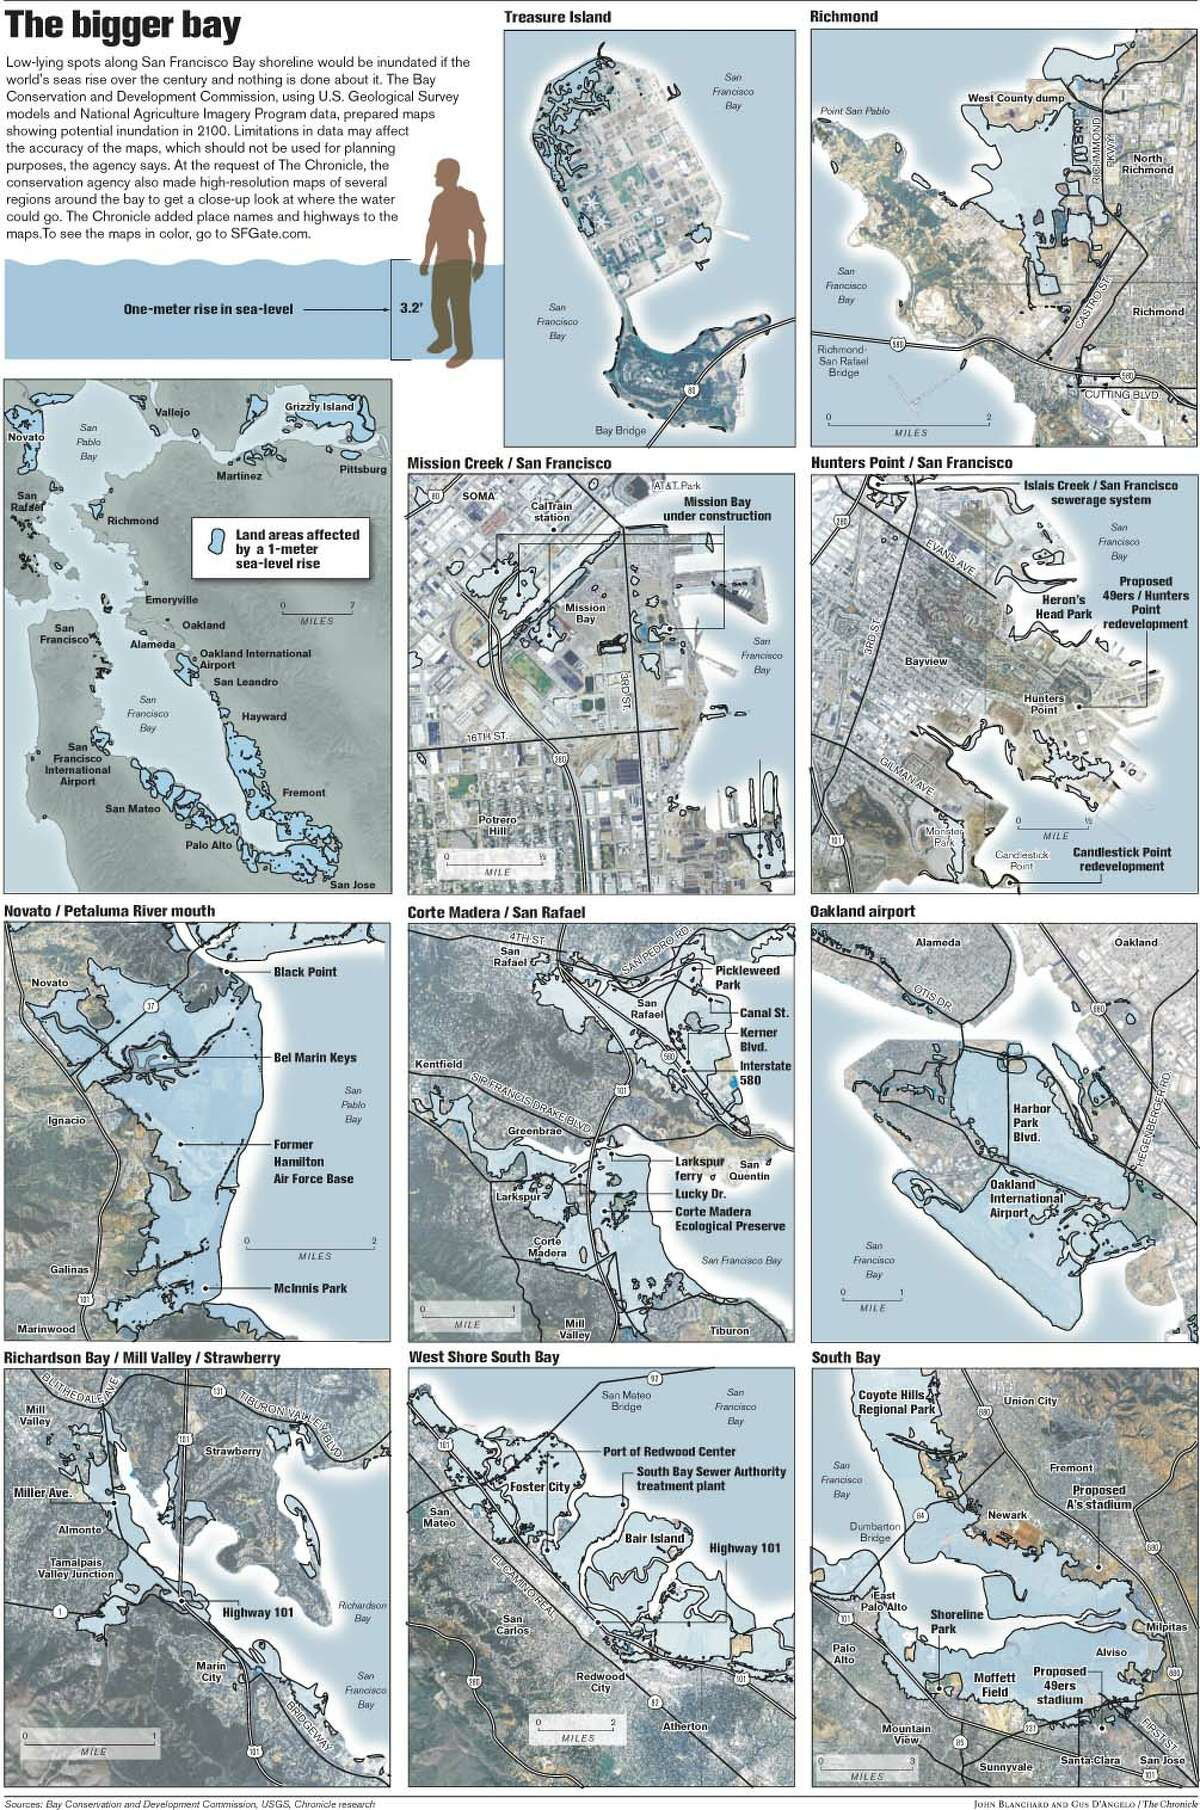 The Bigger Bay. Chronicle graphic by John Blanchard and Gus D'Angelo